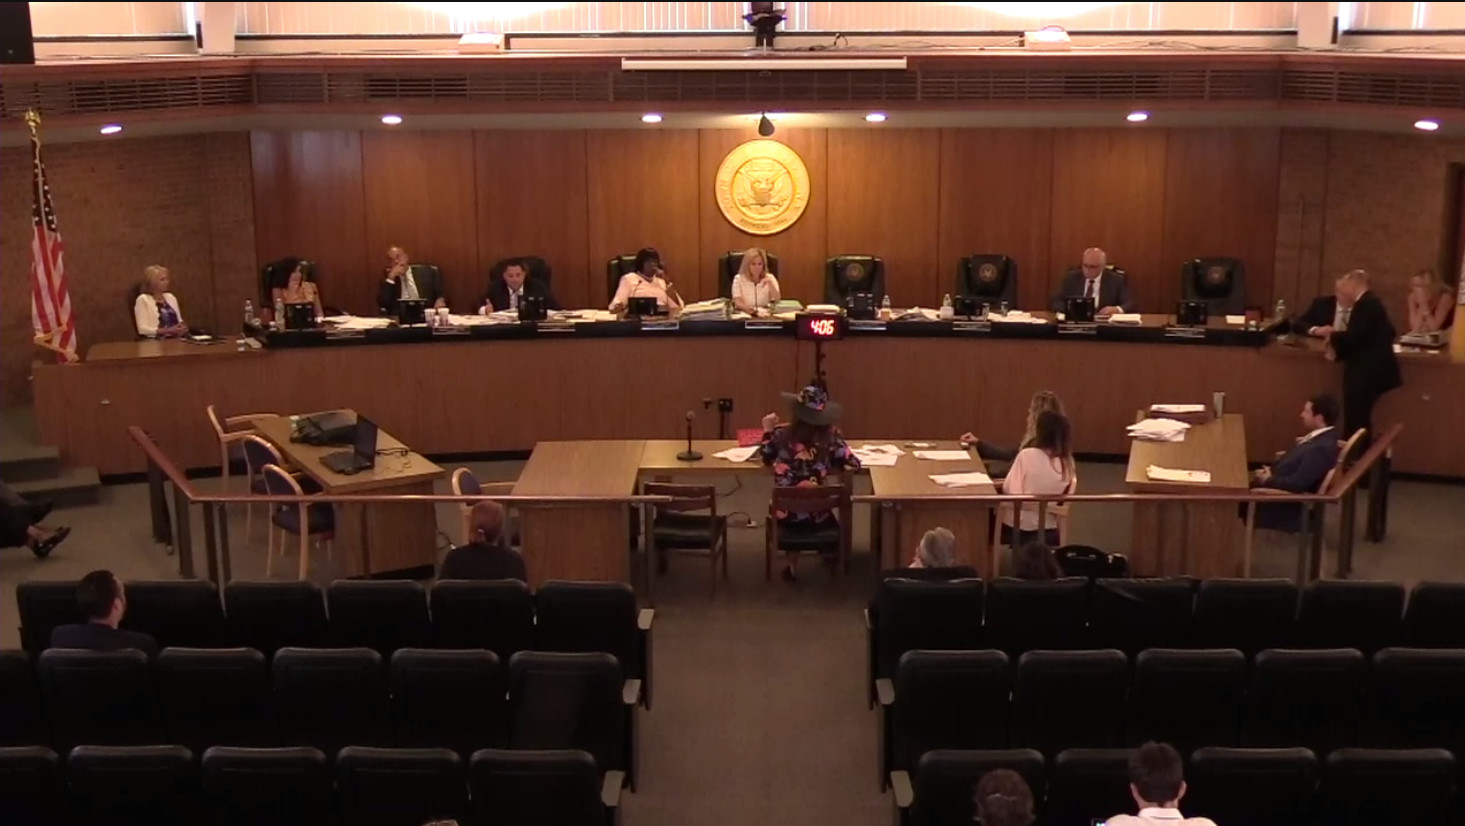 On Tuesday, Republican members of the Hempstead Town Board blocked — for the third time — debate on a proposal to fill vacancies on the board with special elections rather than by appointment. They also passed a rule change that could prevent the issue from being brought up again.